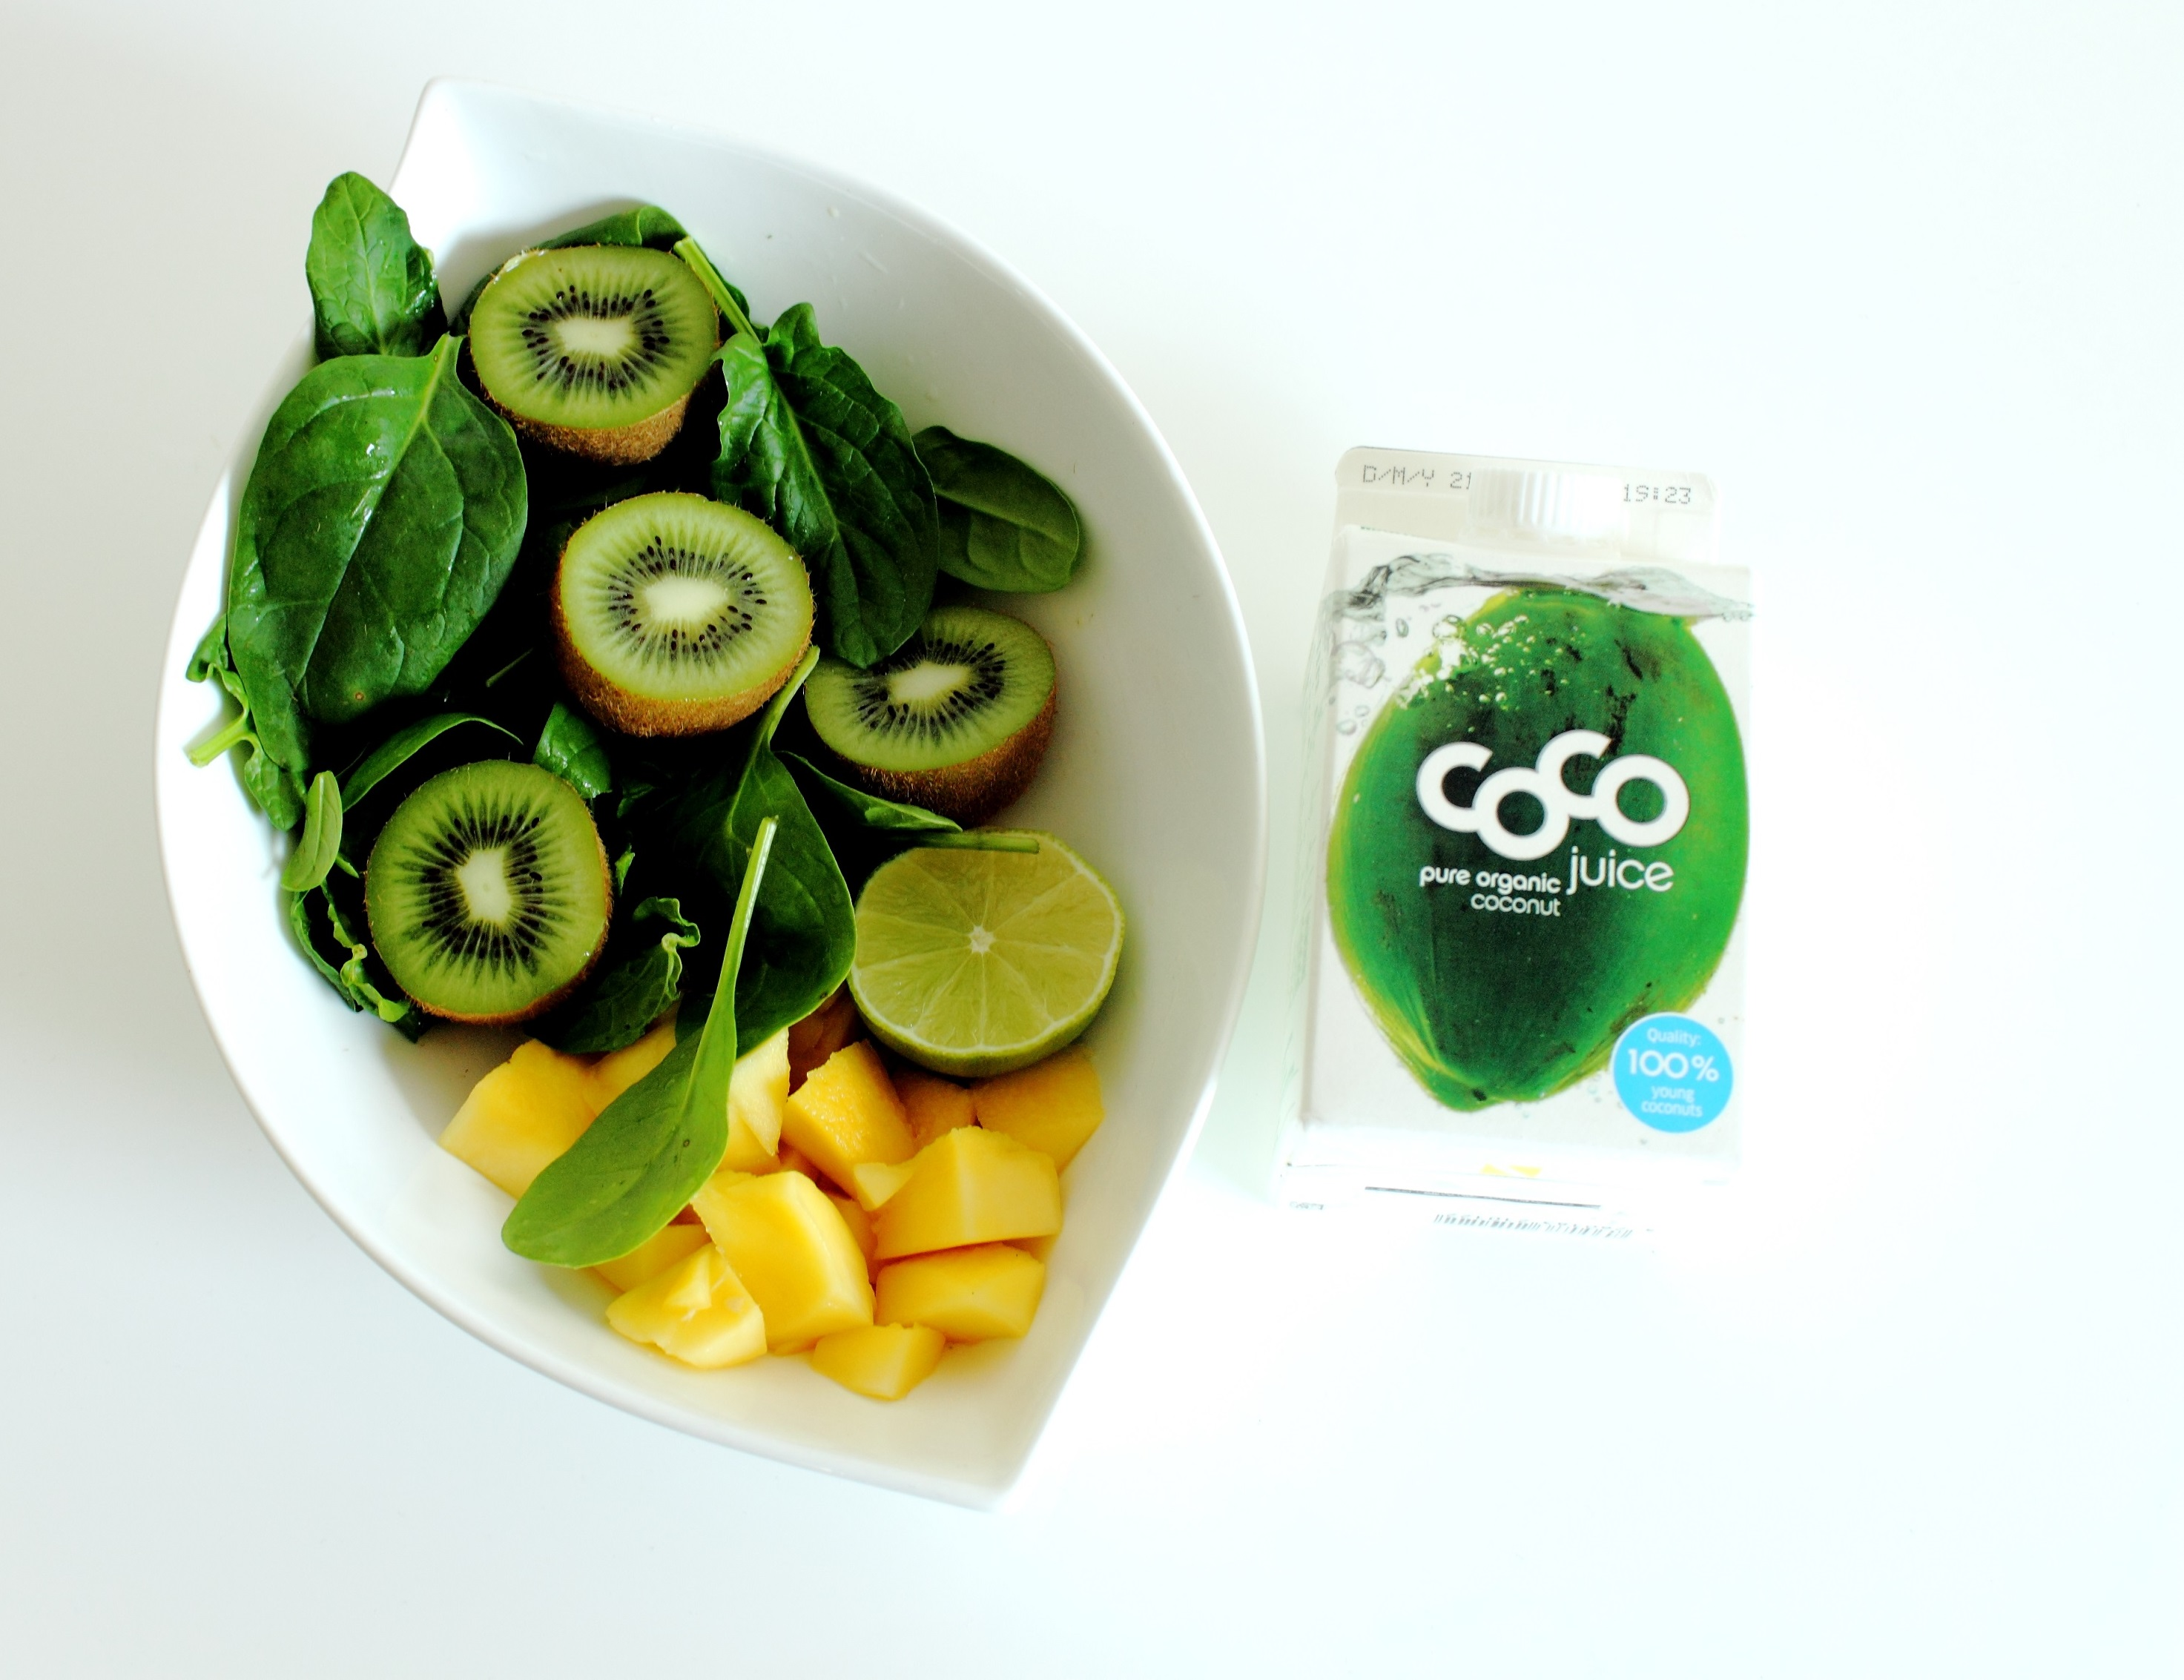 Ingredients green Smoothie Soinach, coconutwater, mango